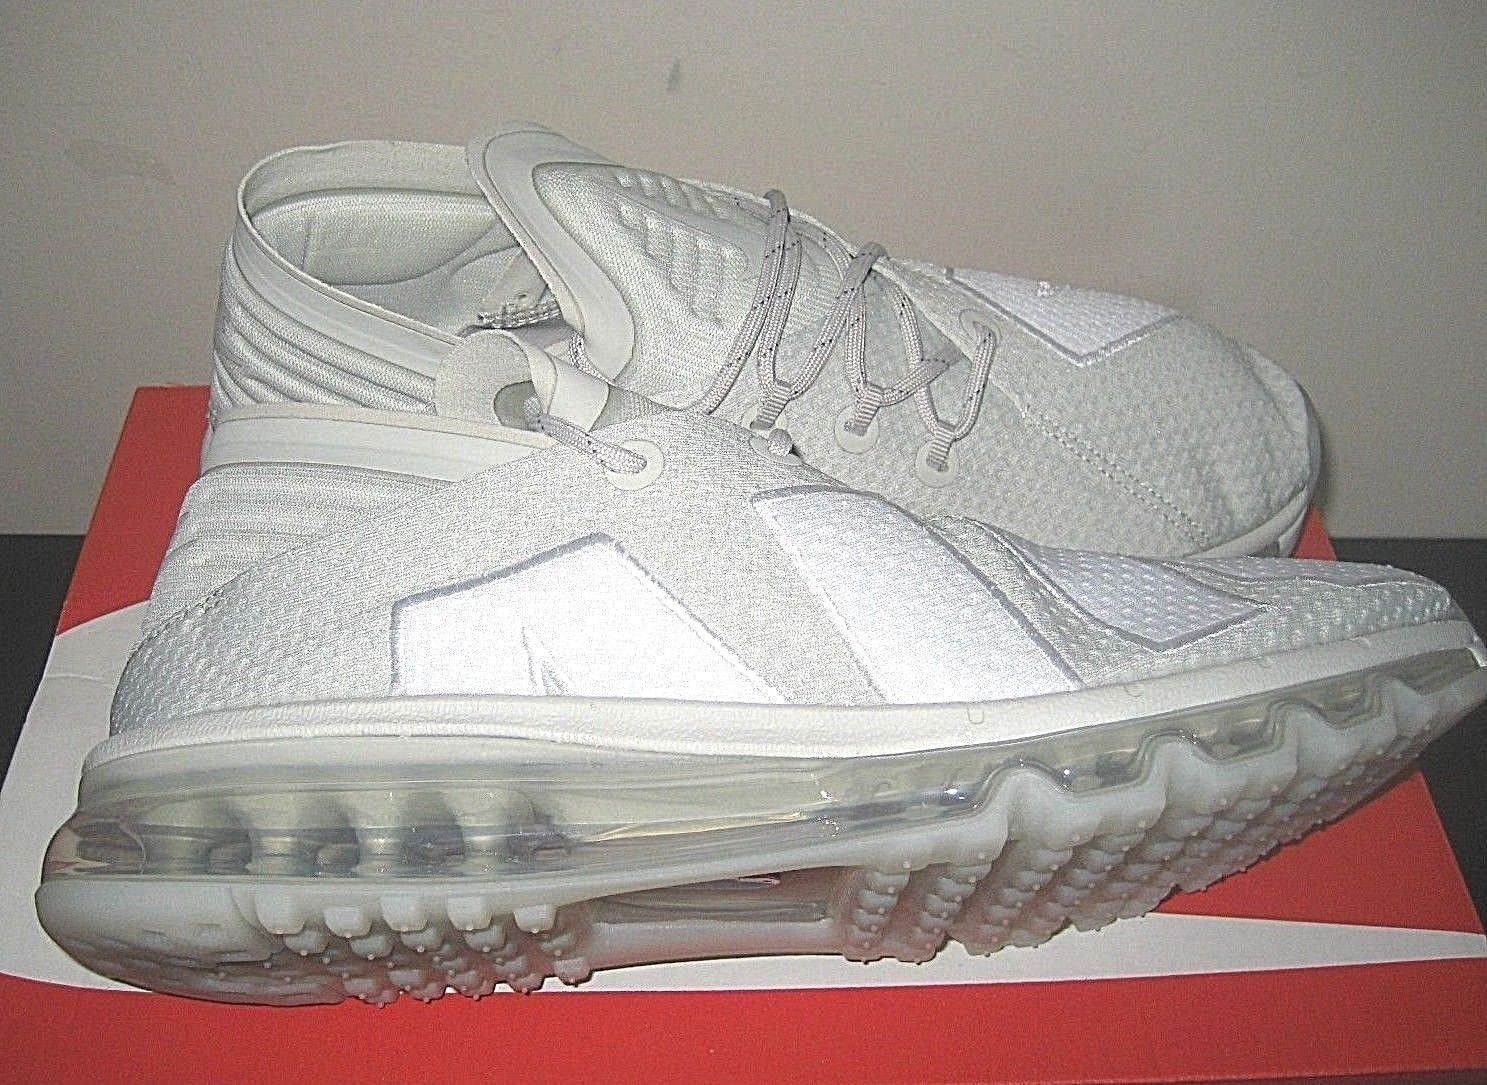 7db0566f6fd14 ... Nike Mens Air Max Flair Running Shoes Light Bone White Cool Grey Size 9  New ...